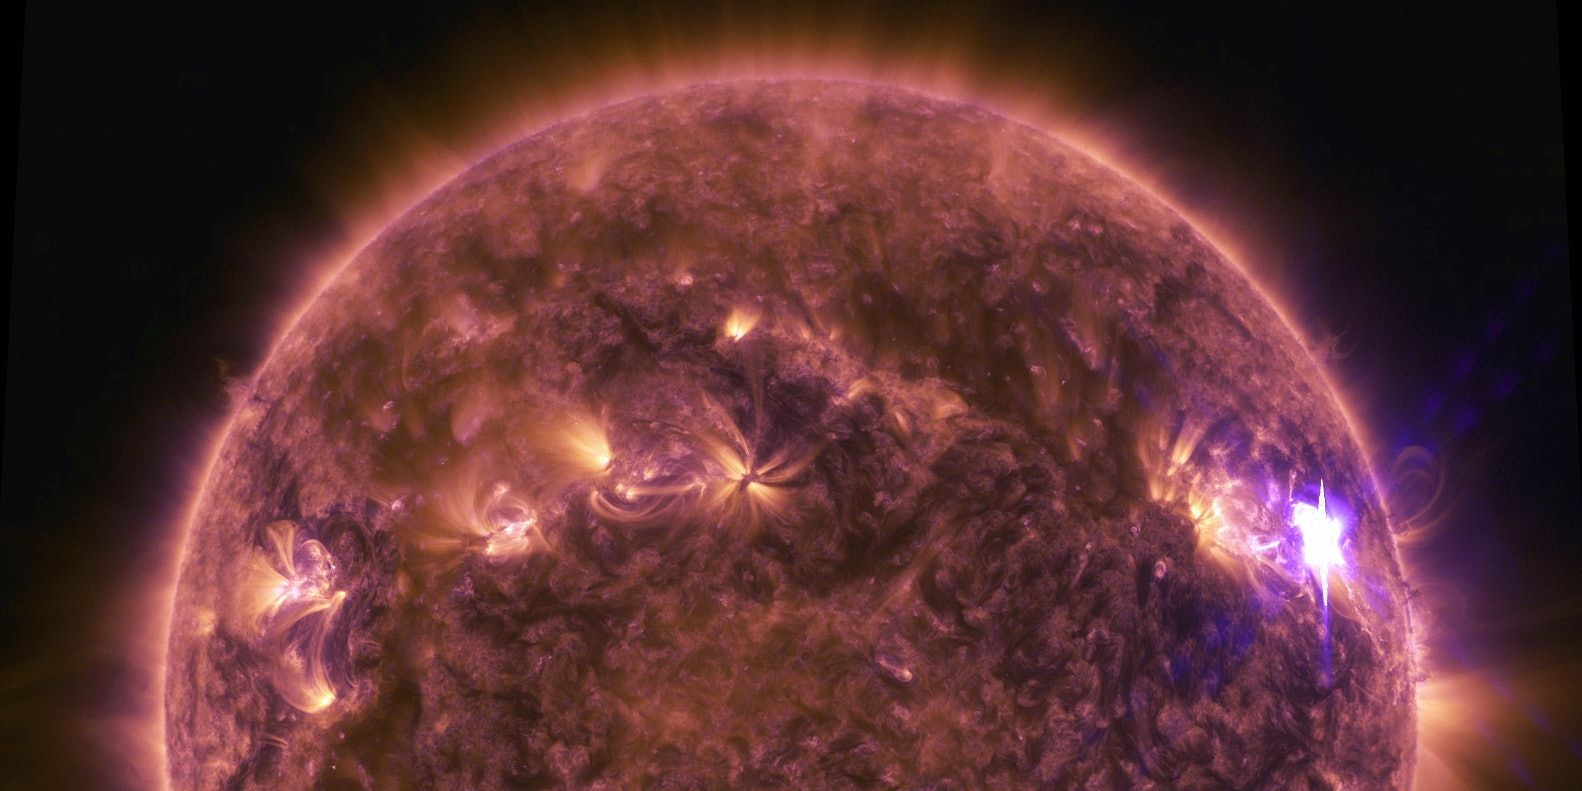 NASA's SDO spacecraft captured some sweet views of a solar flare.